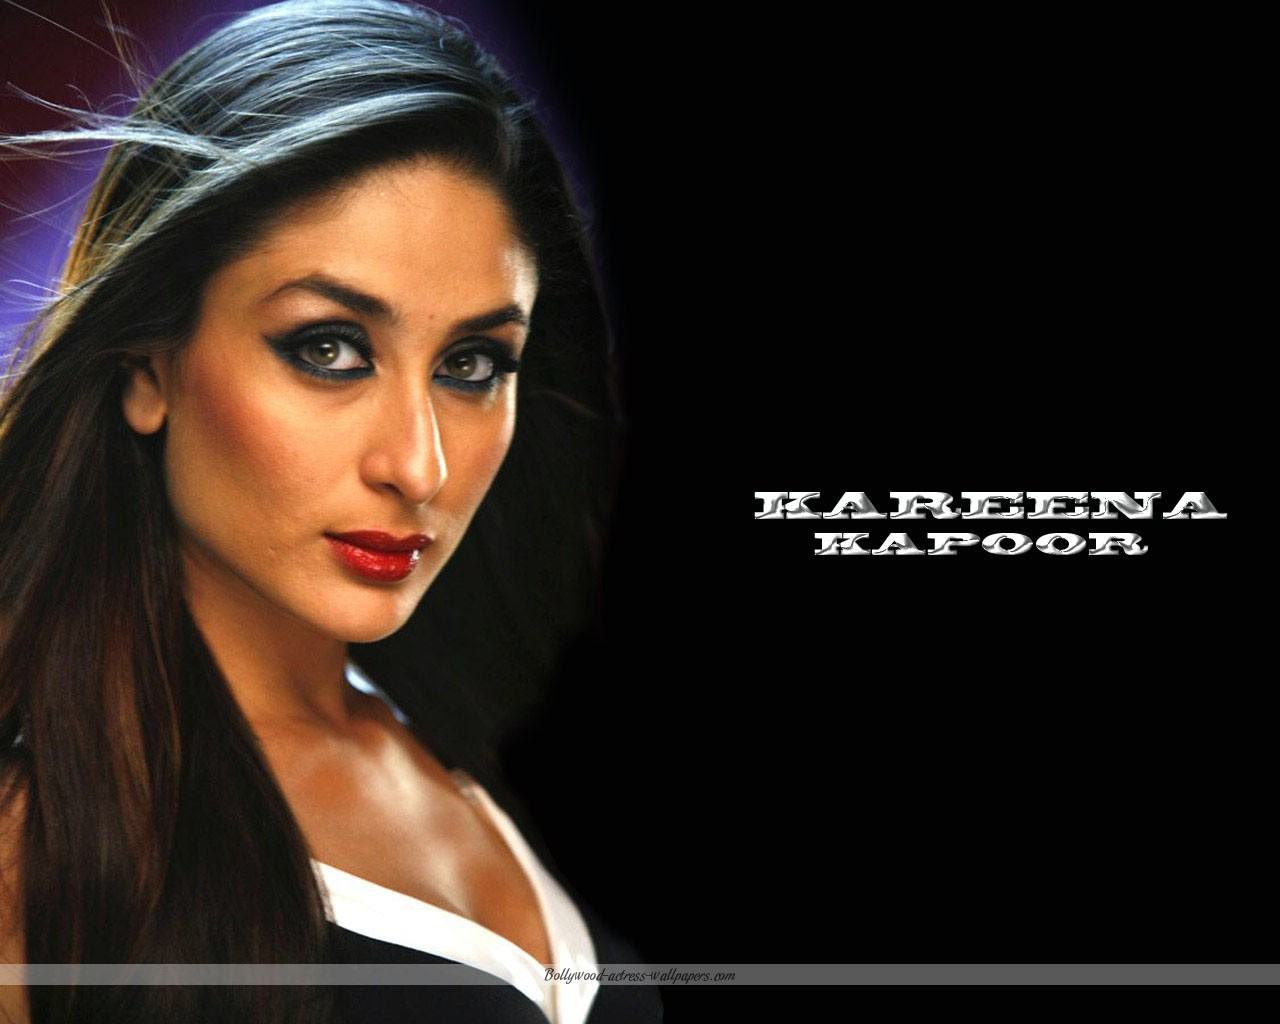 Download Wallpapers Backgrounds   Download Kareena Kapoor 1280x1024